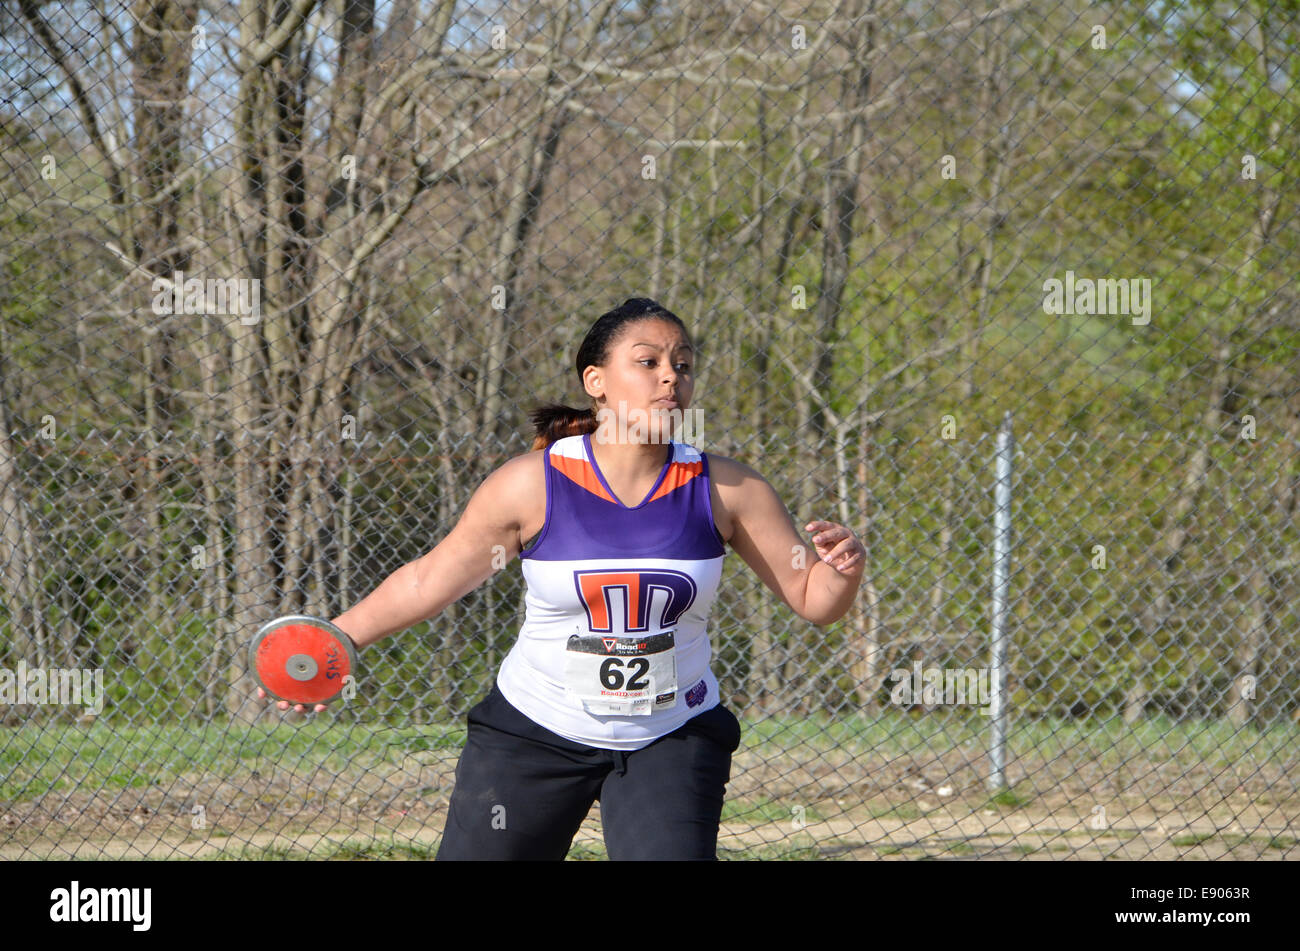 What size discus do junior high track girls use?